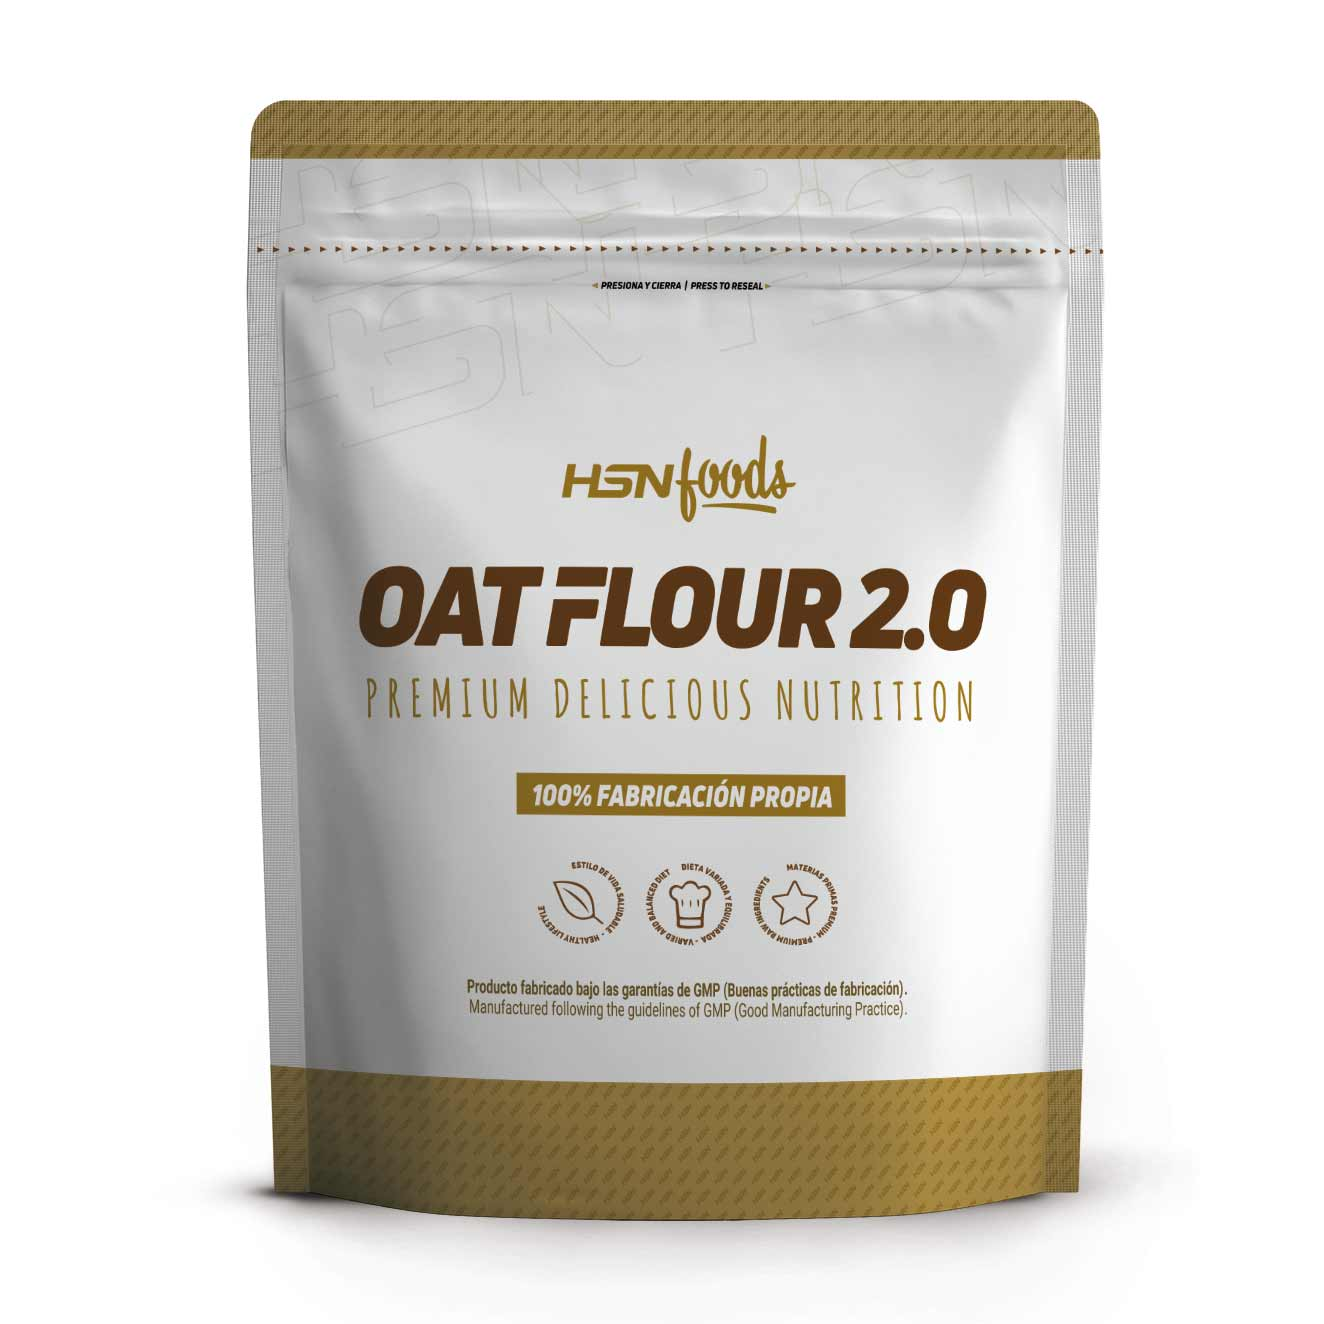 https://cdn.hsnstore.com/media/catalog/product/o/a/oat-flour-general_1.jpg